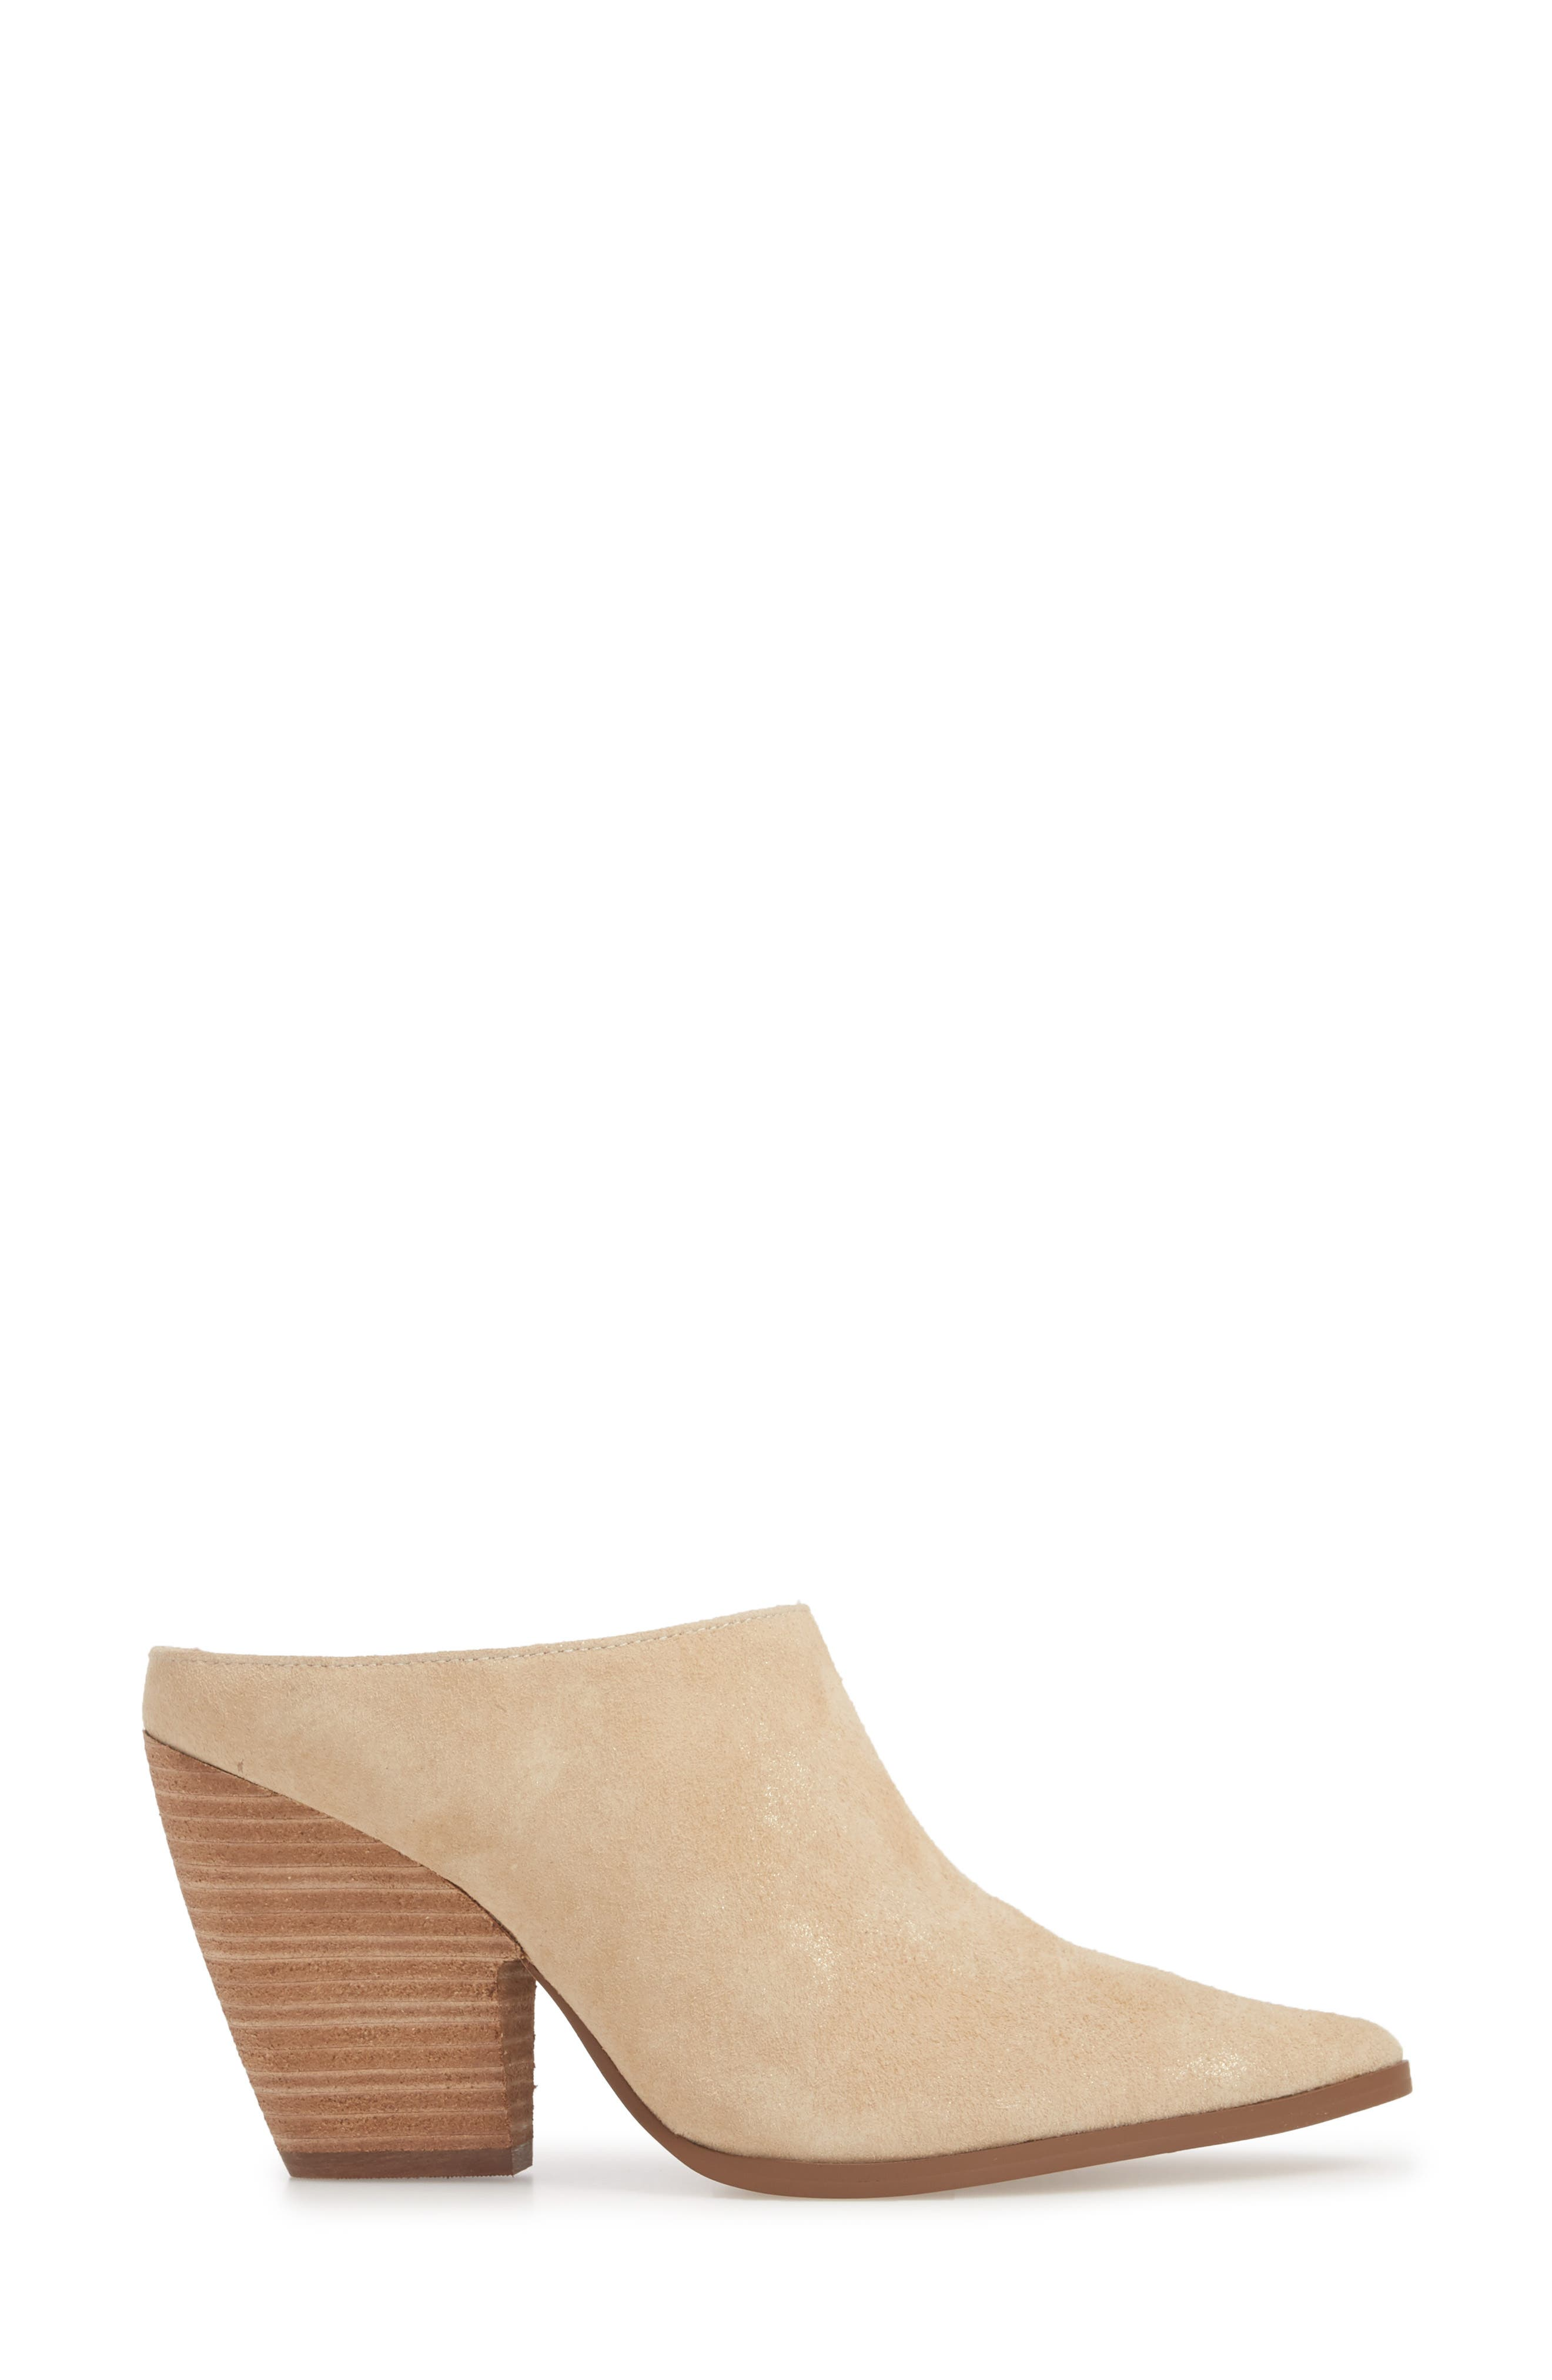 CHARLES BY CHARLES DAVID, Nico Mule, Alternate thumbnail 3, color, NUDE LIGHT GOLD SUEDE